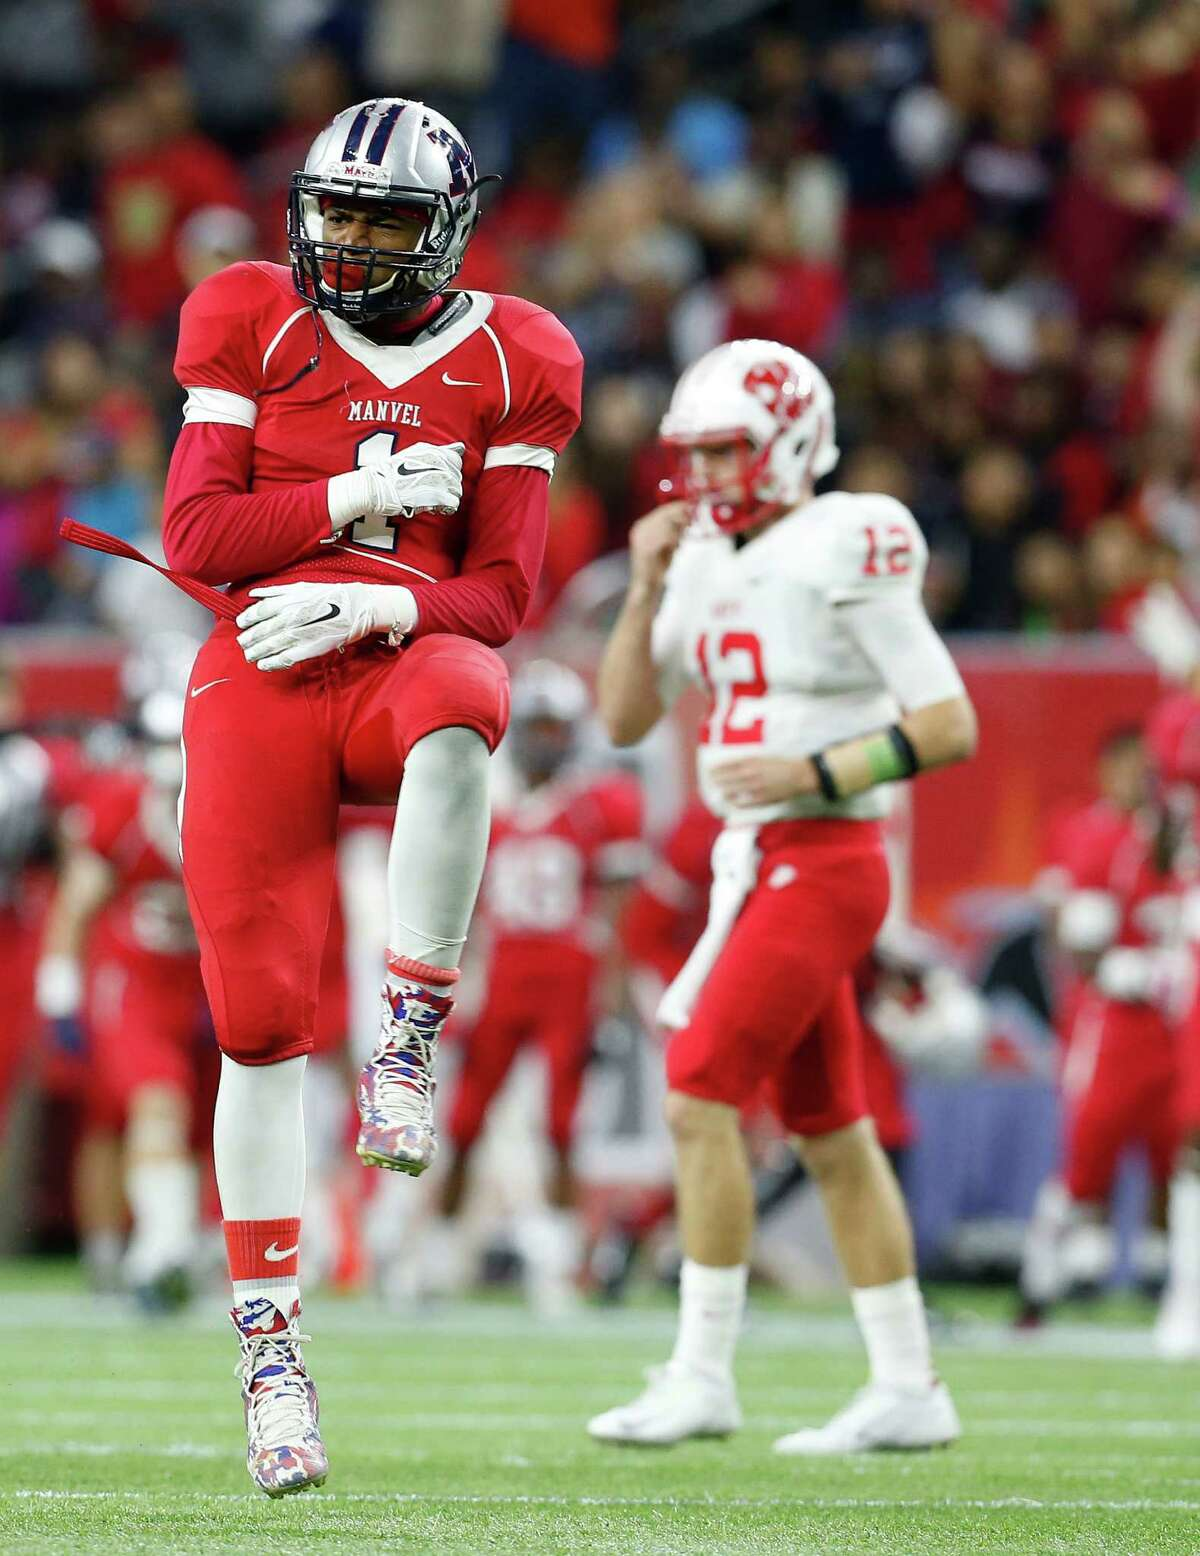 In a shift from recent years, the Houston area will see a number of high-profile recruits announce which schools they'll attend on signing day, including Manvel DB Deontay Anderson (9:30 a.m.), Elsik LB Dontavious Jackson (9:45 a.m.) and Aldine Davis LB Jeffrey McCulloch live on ESPNU.